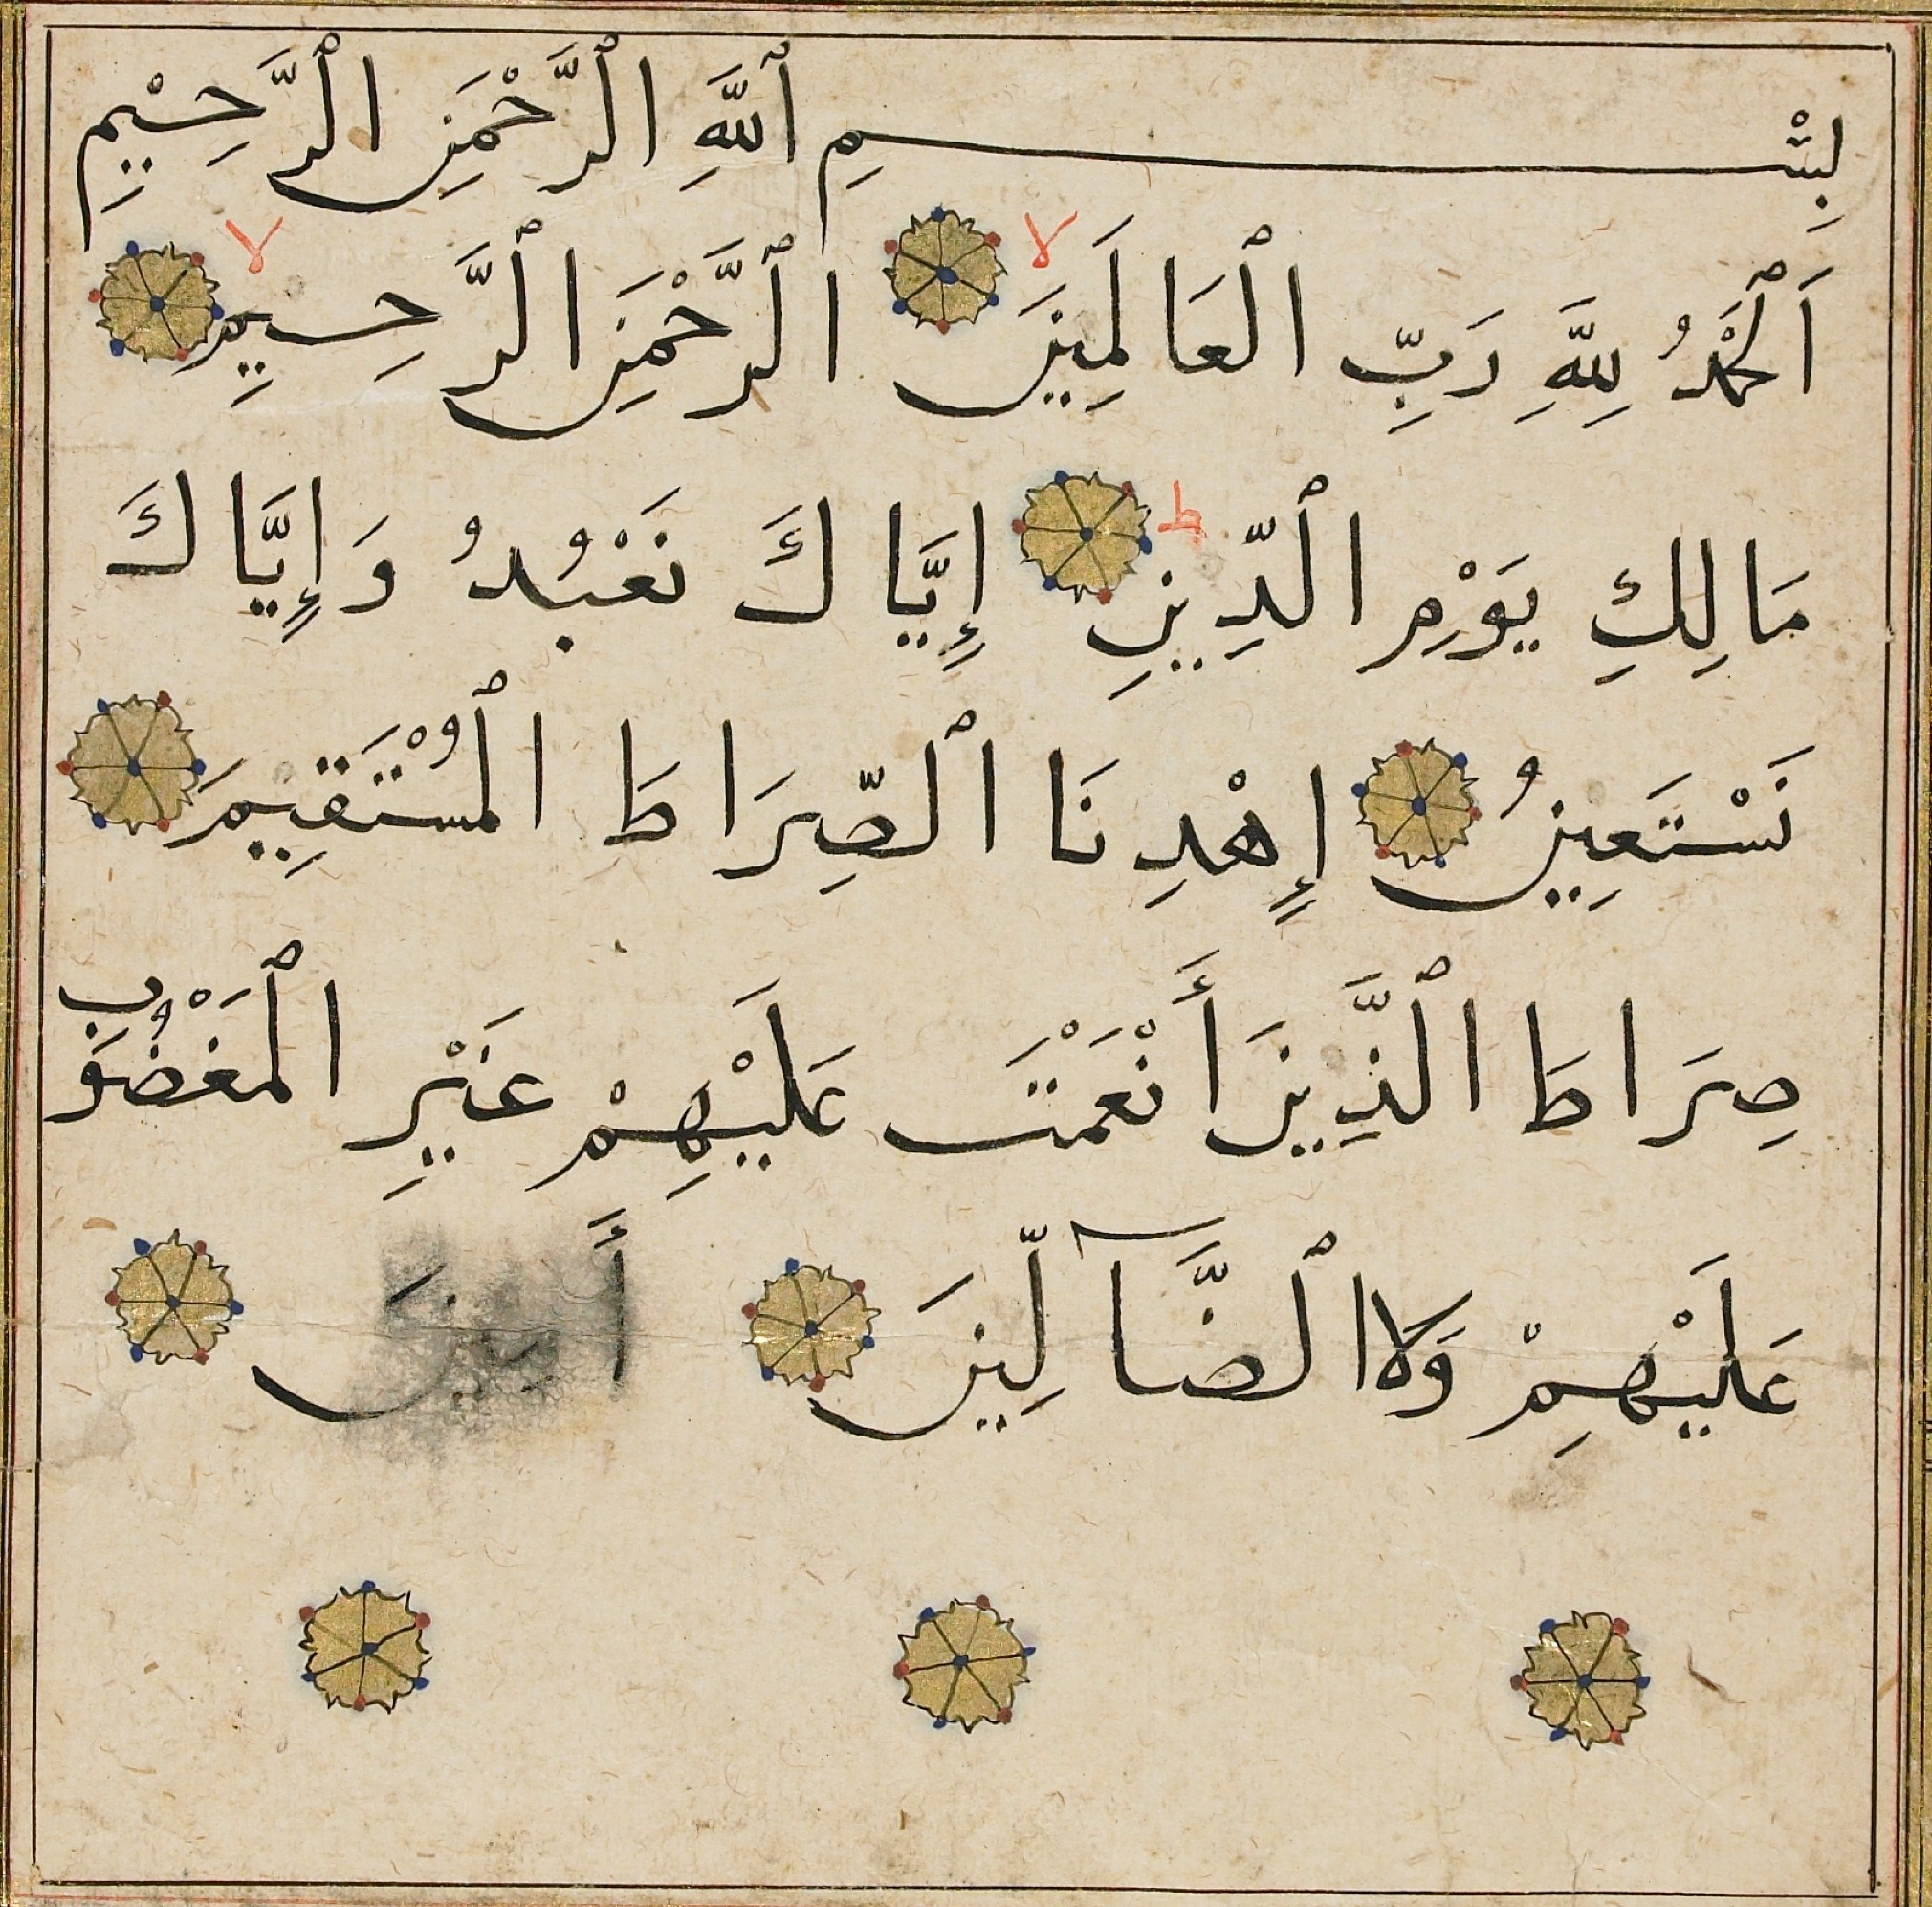 By Al_Fatihah_-_naskh_script.jpg: Unknown Calligrapher derivative work: Cvereb (Al_Fatihah_-_naskh_script.jpg) [Public domain or Public domain], via Wikimedia Commons